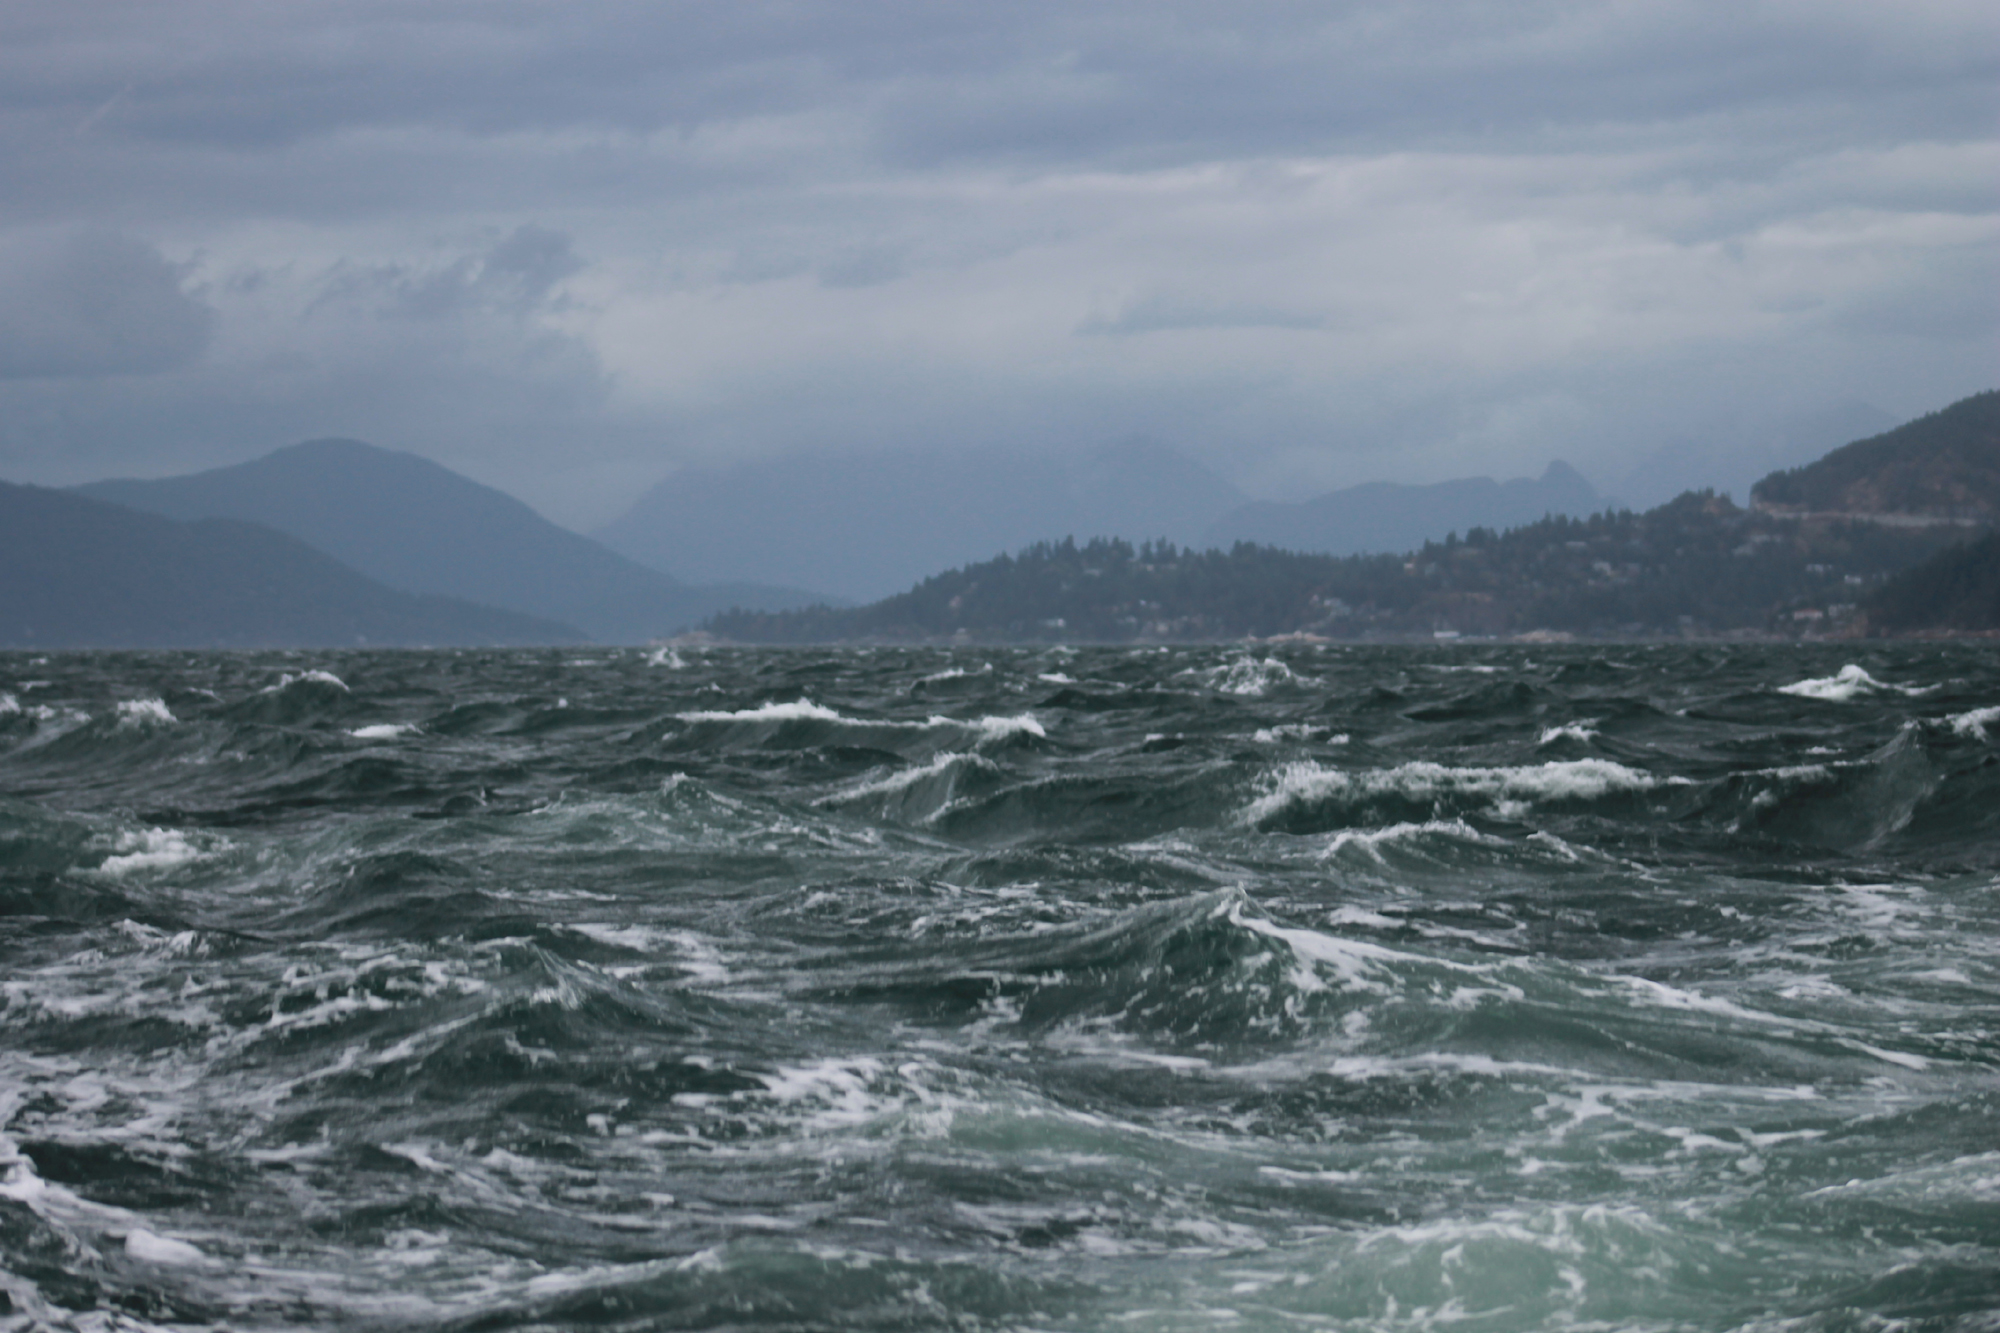 A stormy day in Vancouver harbor. Photo by  Todd Martin .